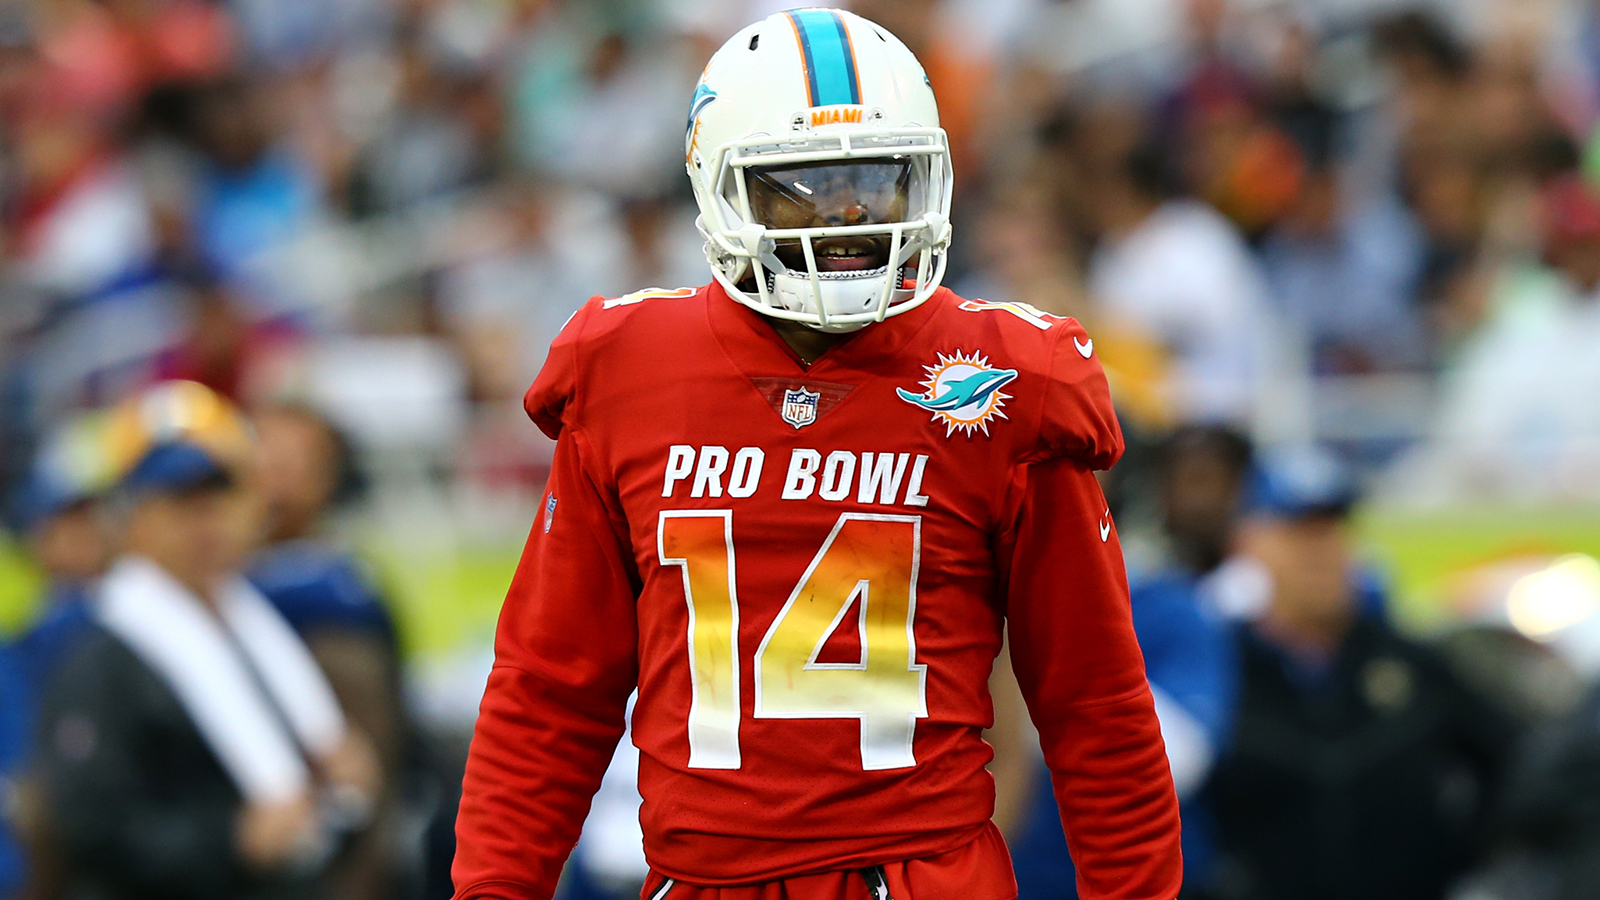 Dolphins use non-exclusive franchise tag on Pro Bowl WR Jarvis Landry